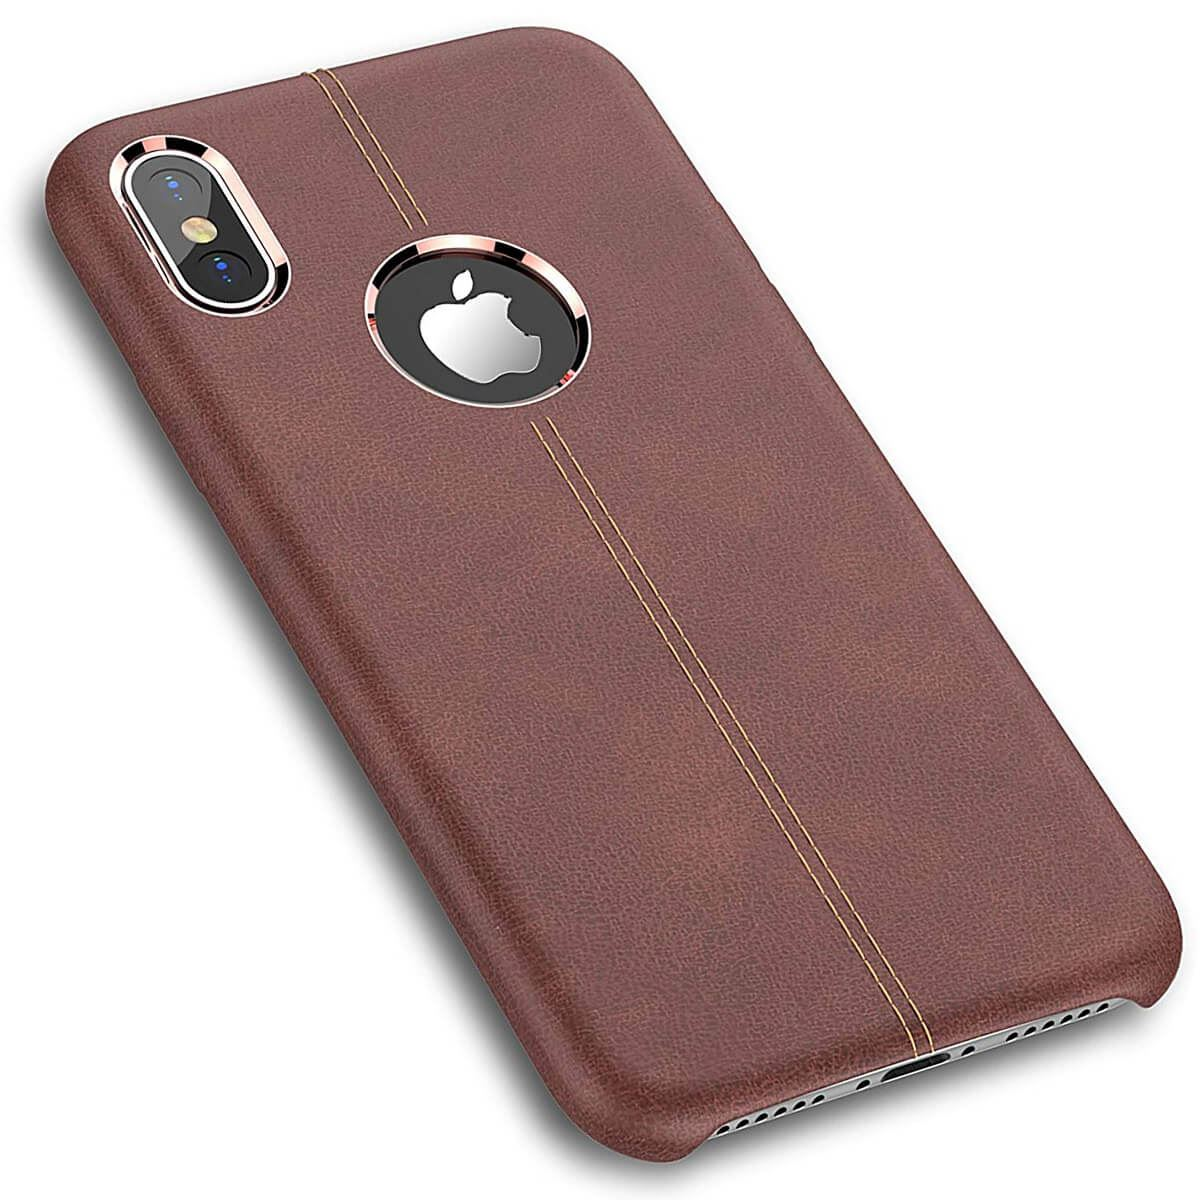 Rugged-Thin-Case-Skin-For-Apple-iPhone-10-X-8-7-Plus-6s-Genuine-Leather-Cover thumbnail 9